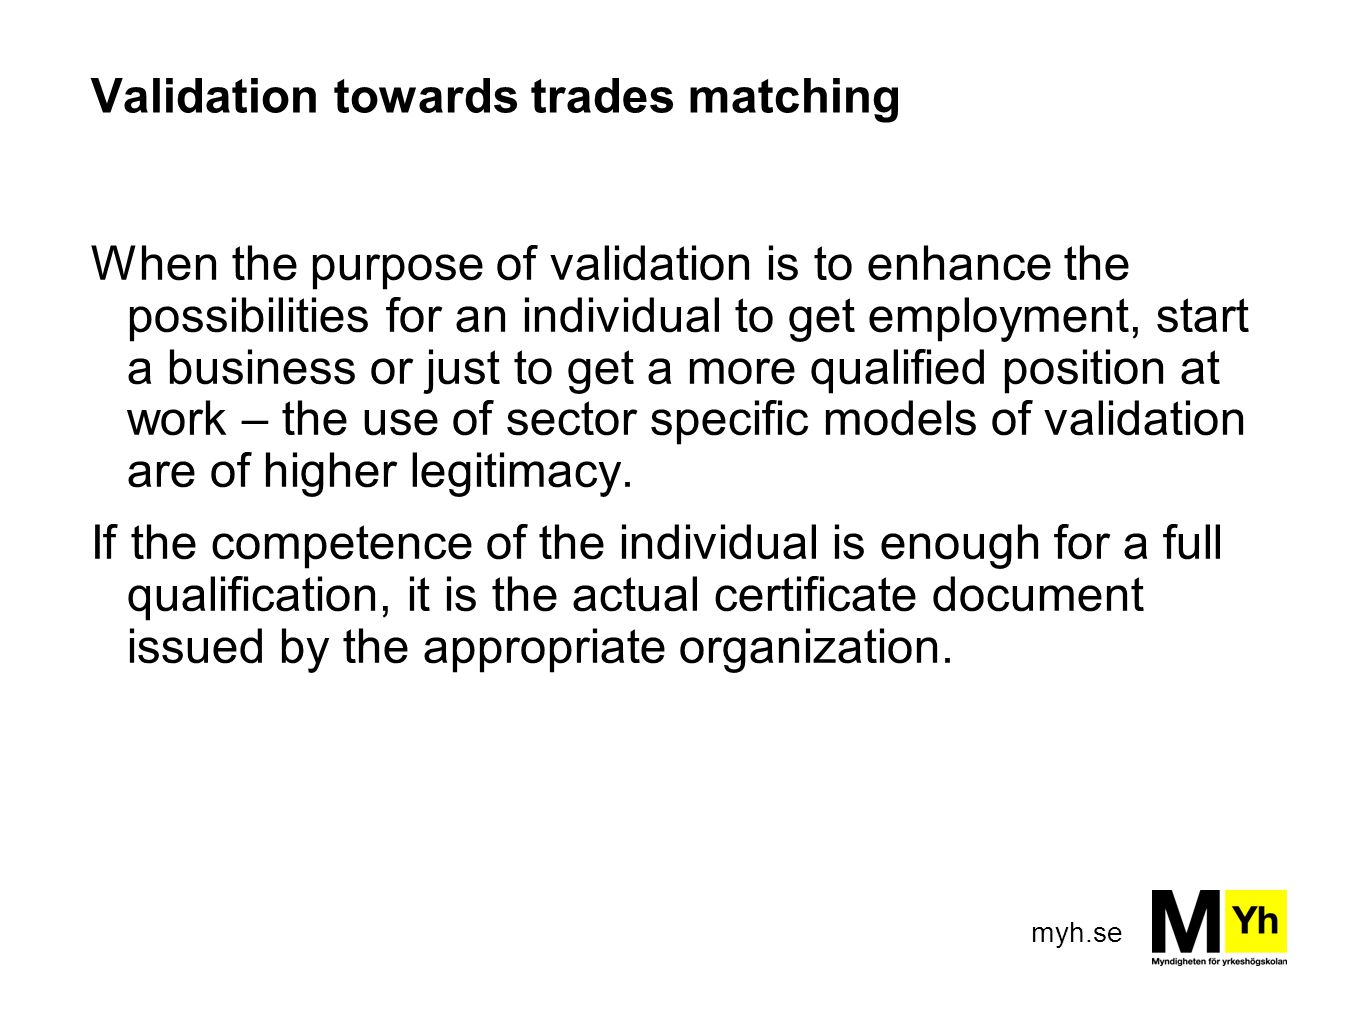 myh.se Validation towards trades matching When the purpose of validation is to enhance the possibilities for an individual to get employment, start a business or just to get a more qualified position at work – the use of sector specific models of validation are of higher legitimacy.